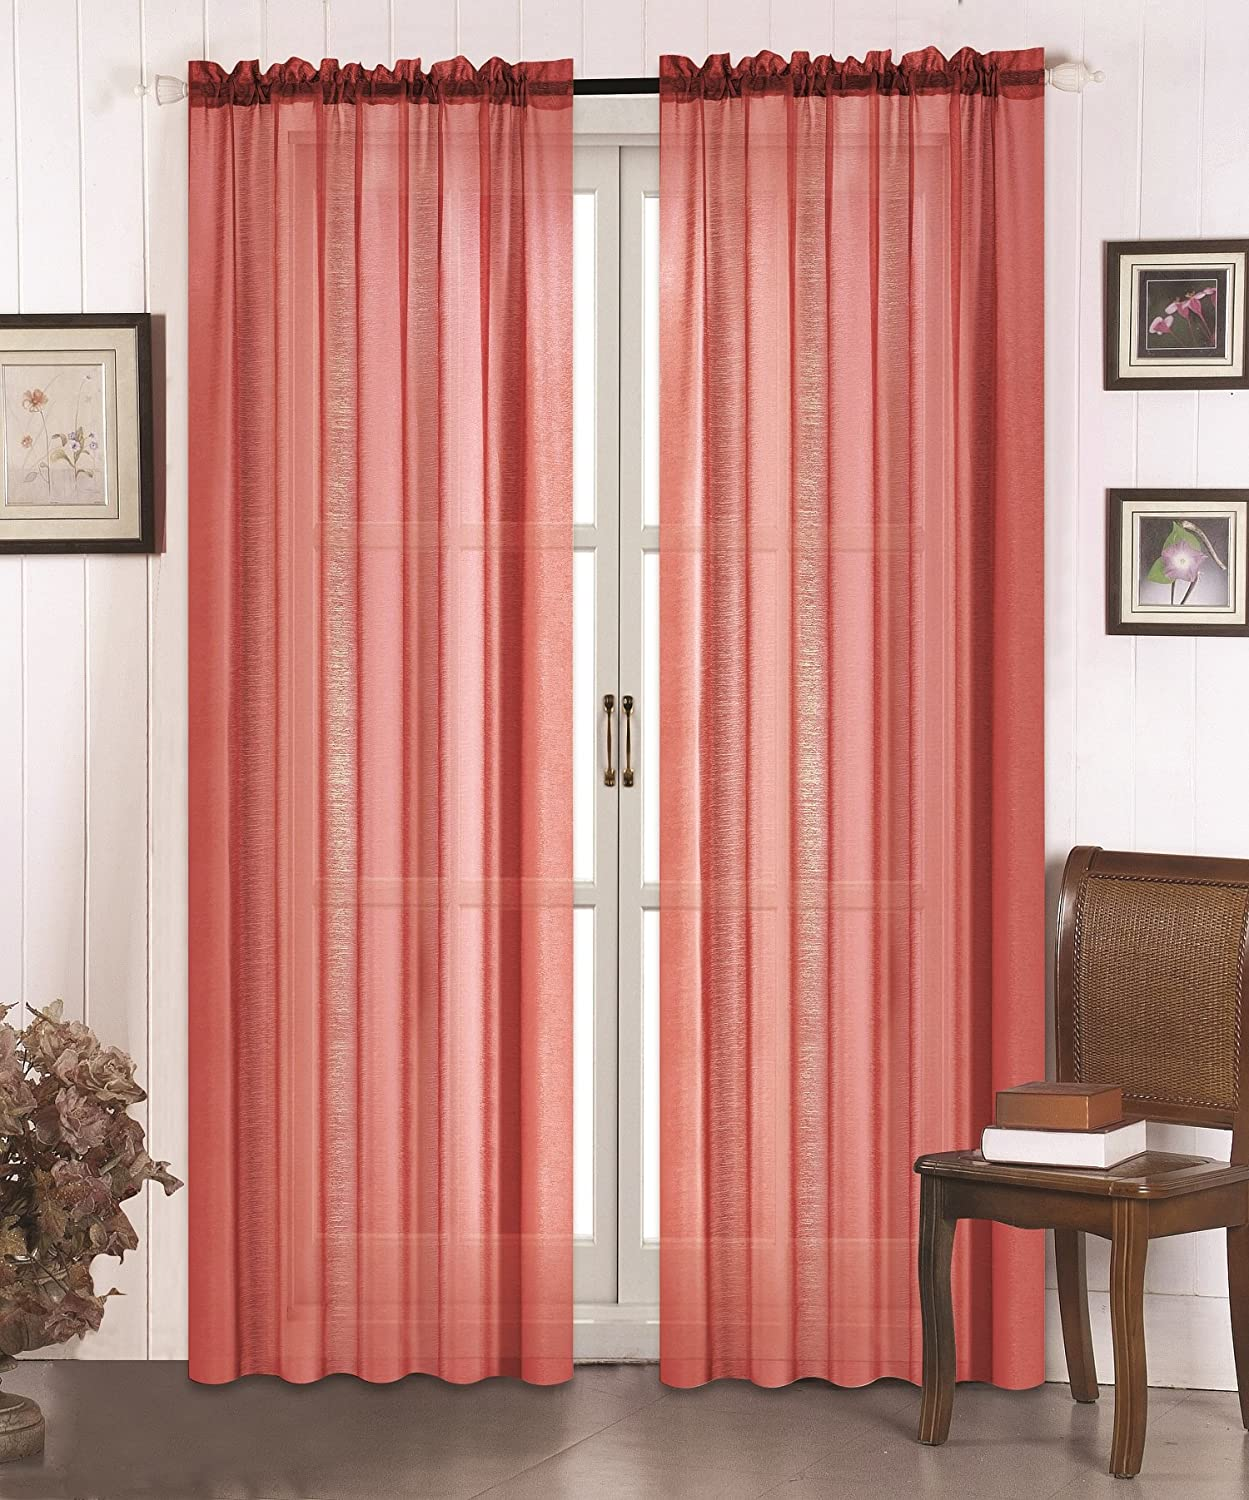 All American Collection New 2pc High Quality Doli Sheer Curtain Brick Red